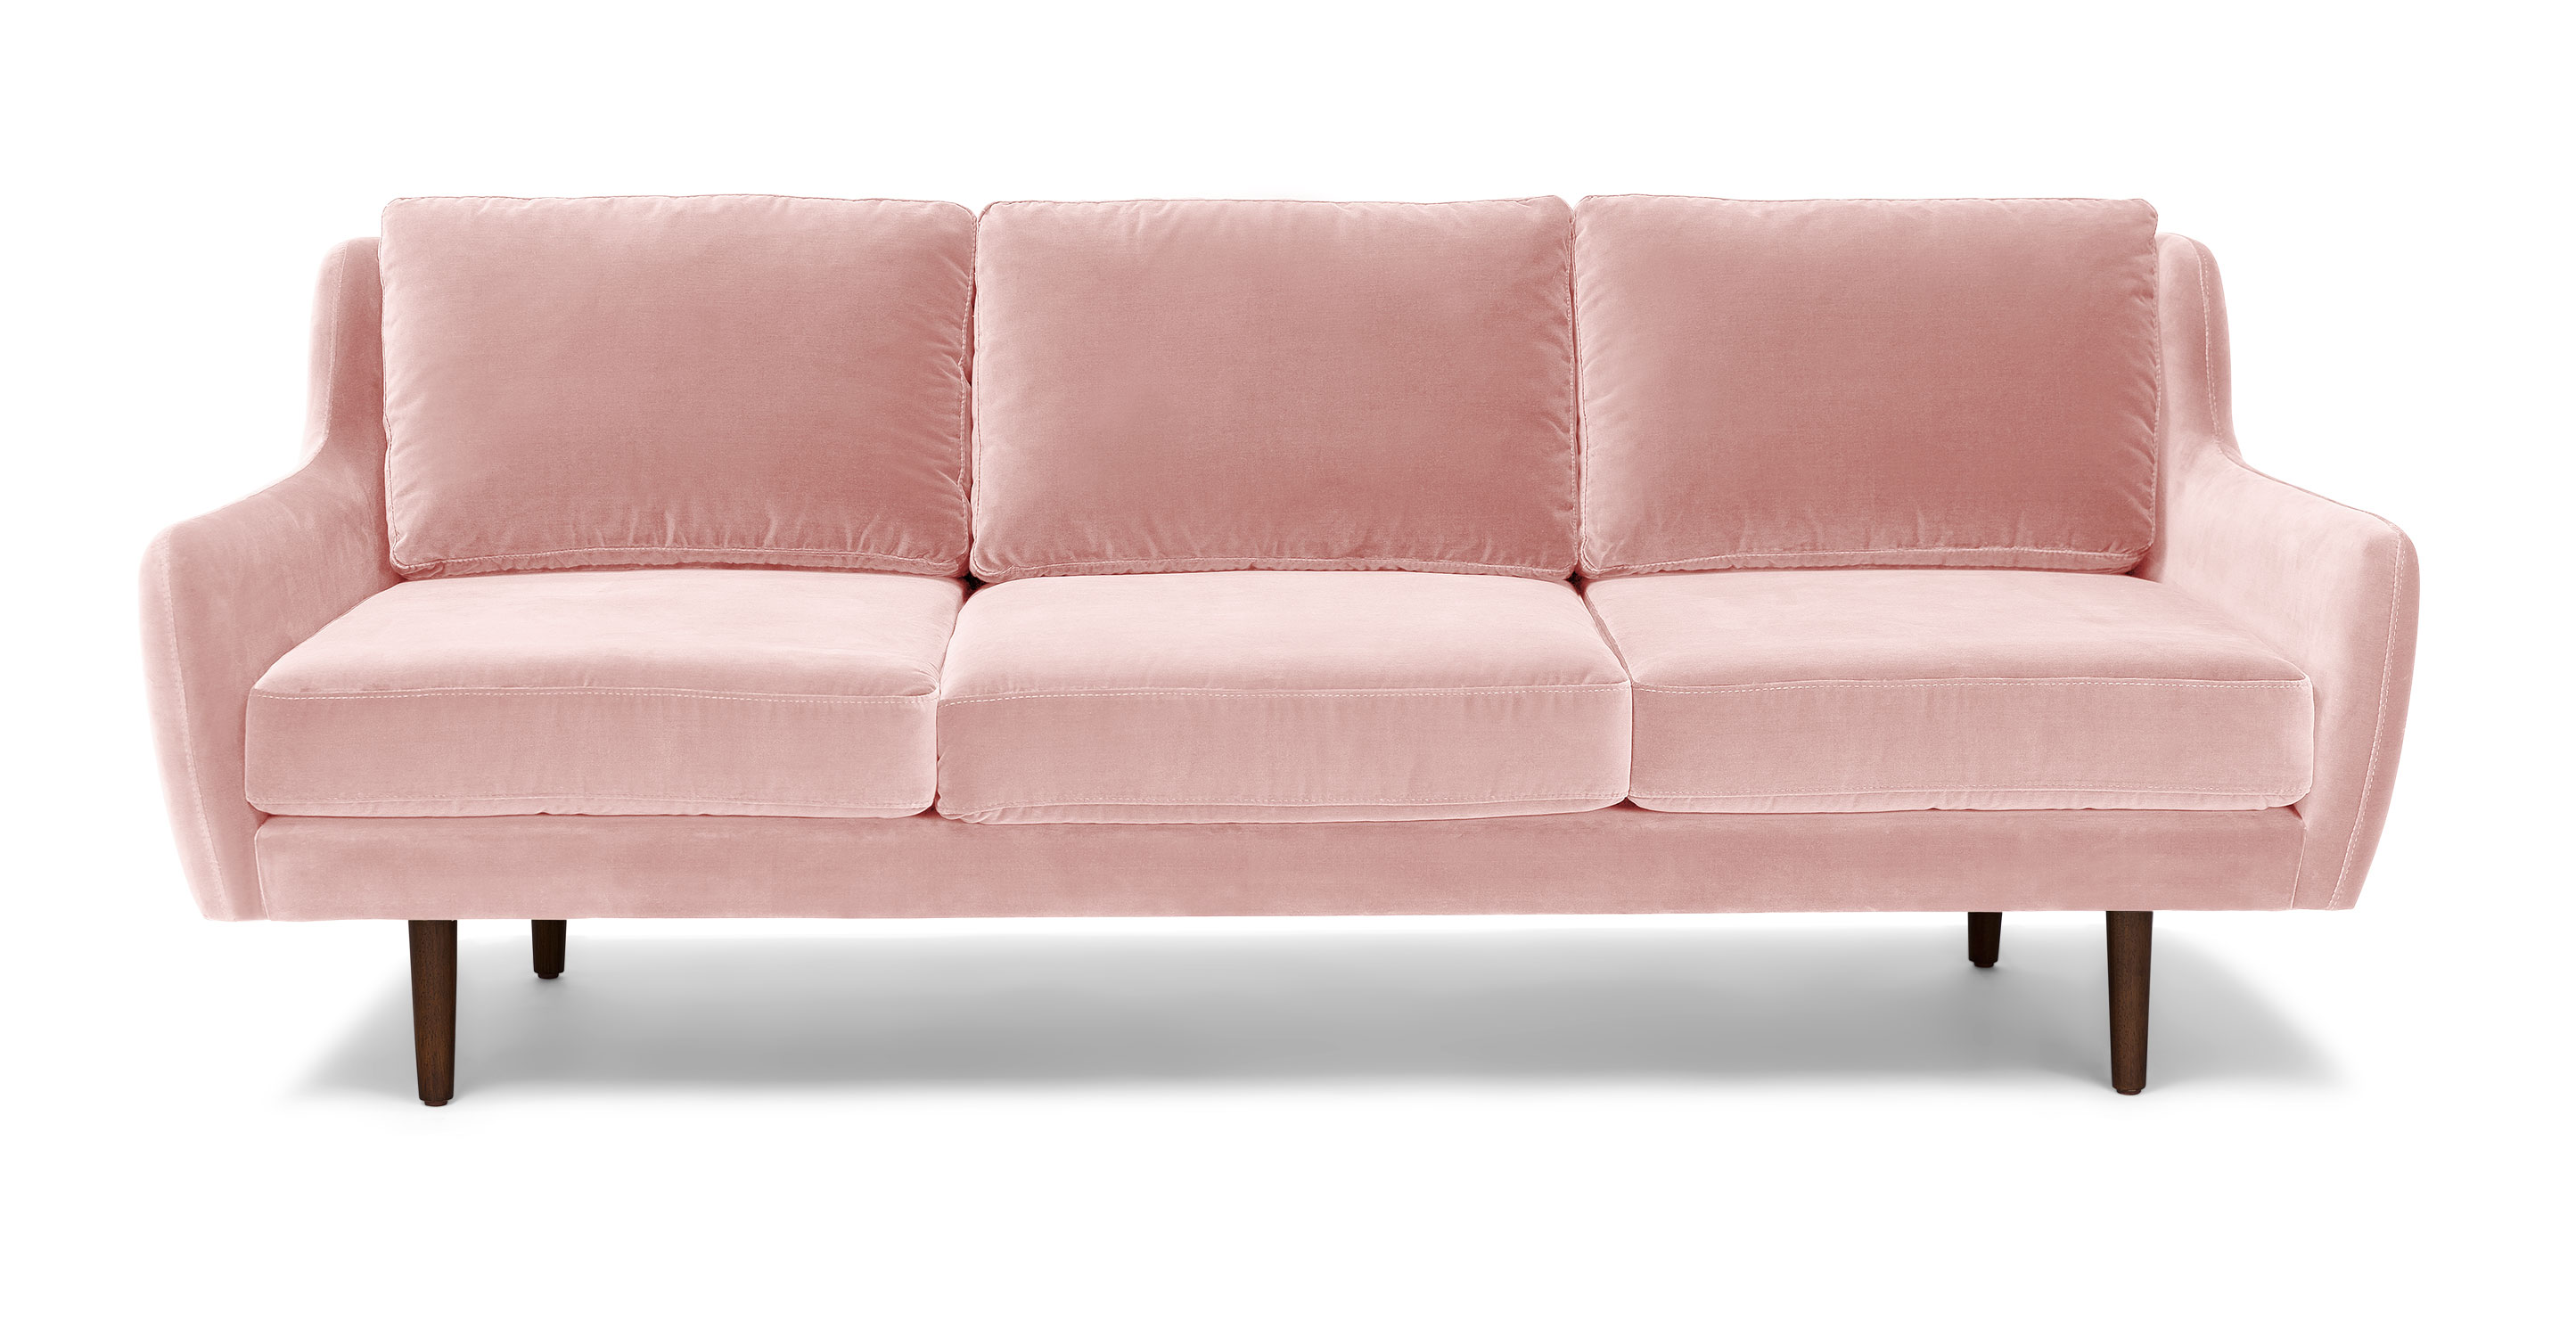 Matrix blush pink sofa sofas article modern mid for Couch furniture